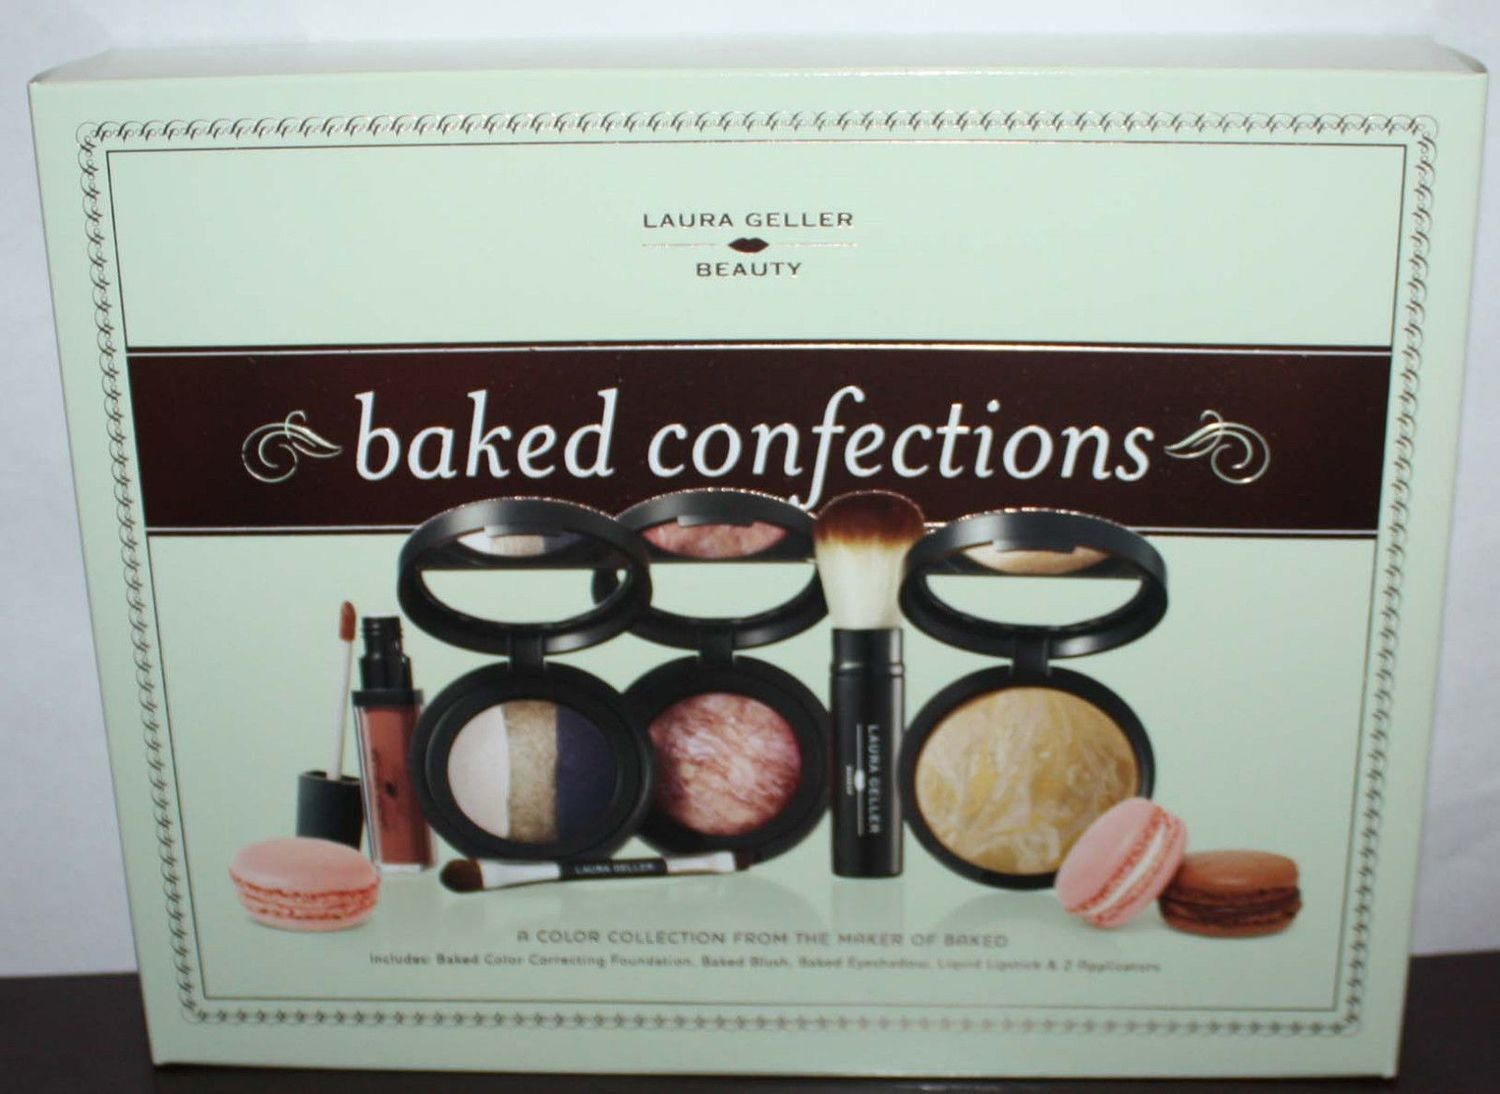 Laura Geller BAKED CONFECTIONS Foundation/Blush/Eyeshadow/Lipstick/Applicators